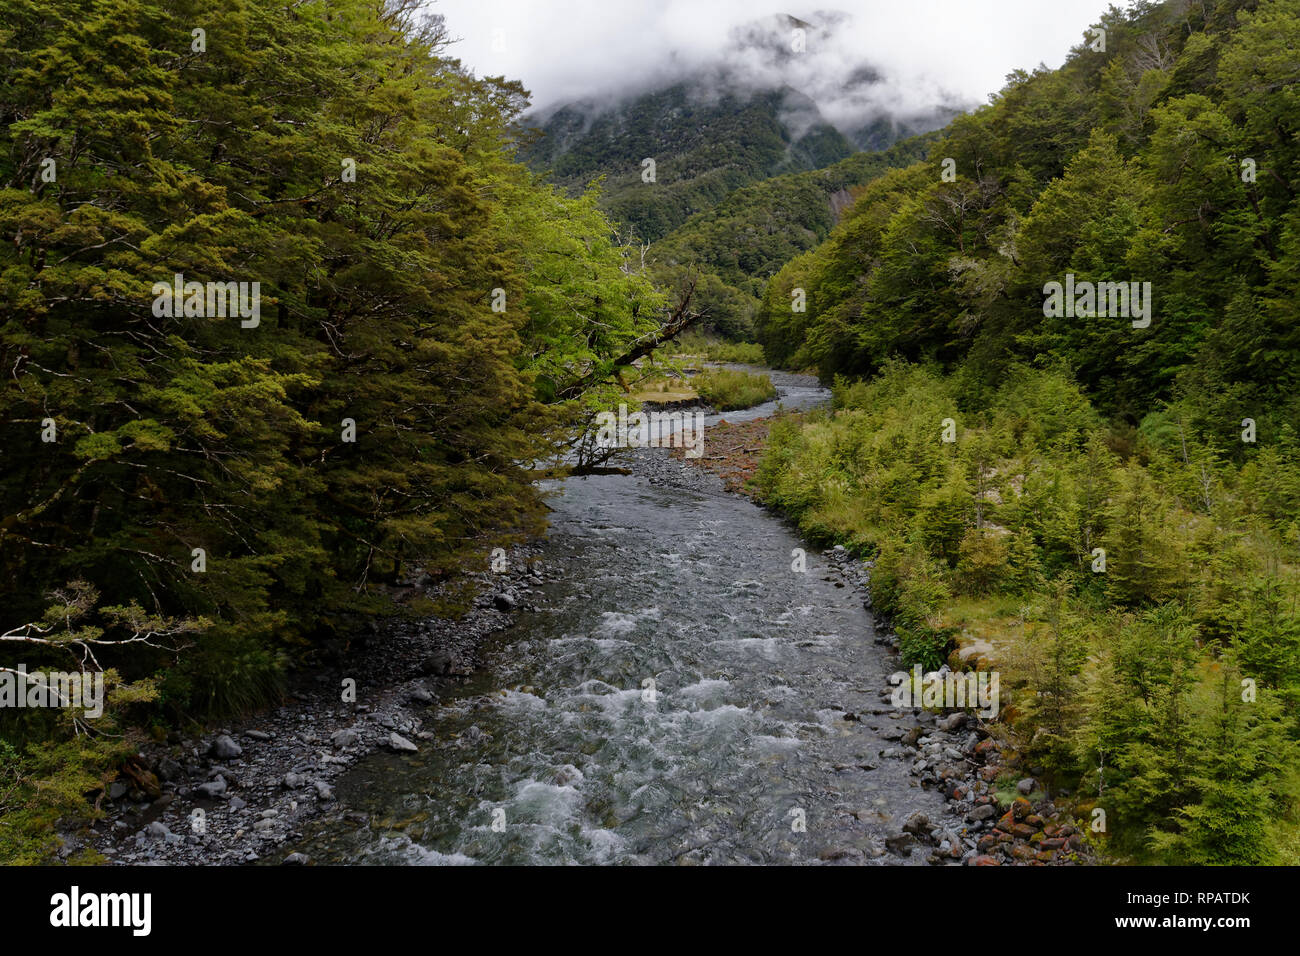 A meandering river with a misty hill behiind it - Stock Image